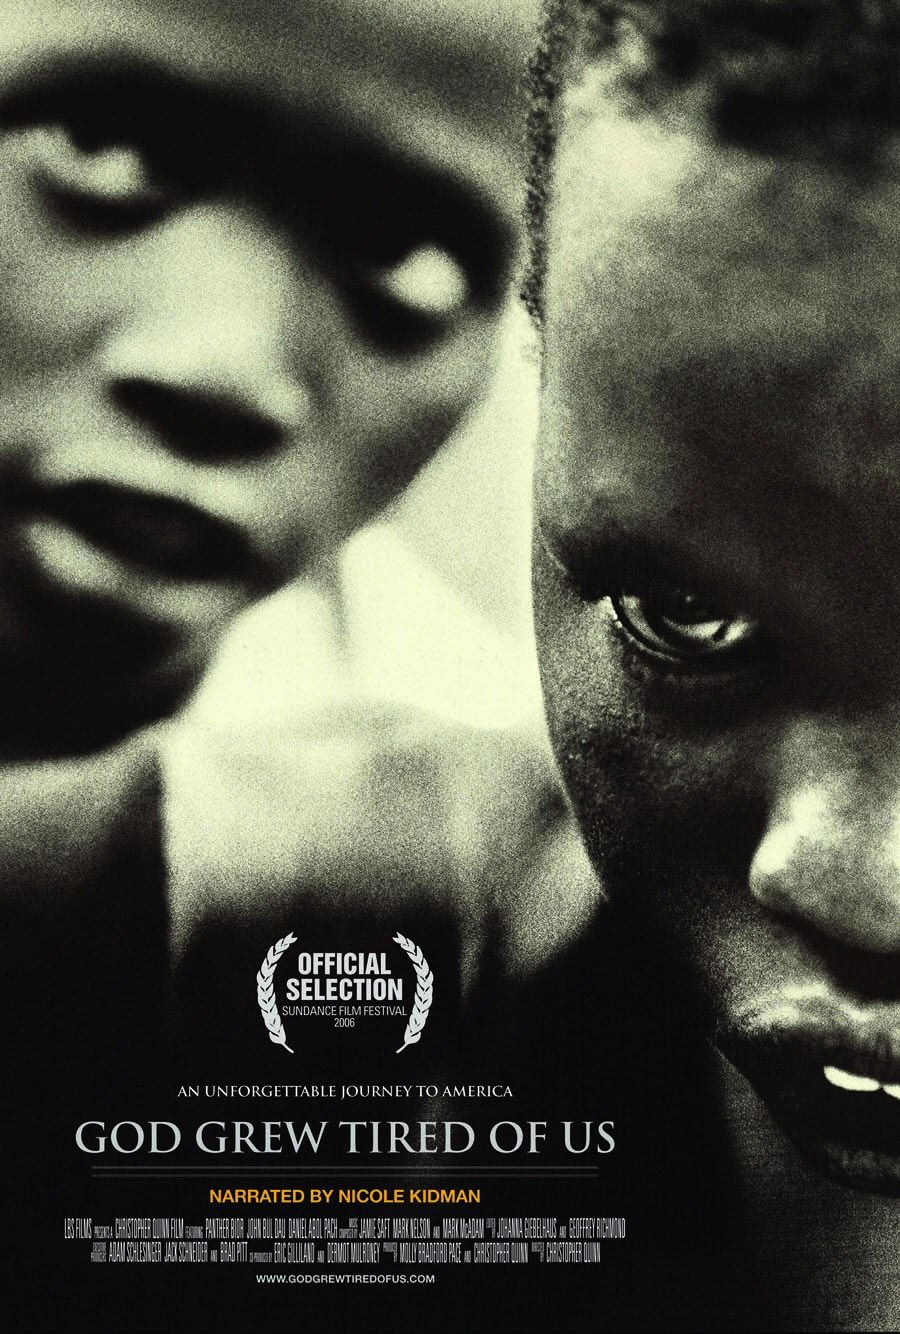 god grew tired of us a An award-winning, critically acclaimed documentary, narrated by nicole kidman, god grew tired of us explores the indomitable spirit of three 'lost boys' from the sudan who are forced to leave their homeland due to a tumultuous civil war the documentary chronicles their triumph over seemingly insurmountable adversities and relocation to america.